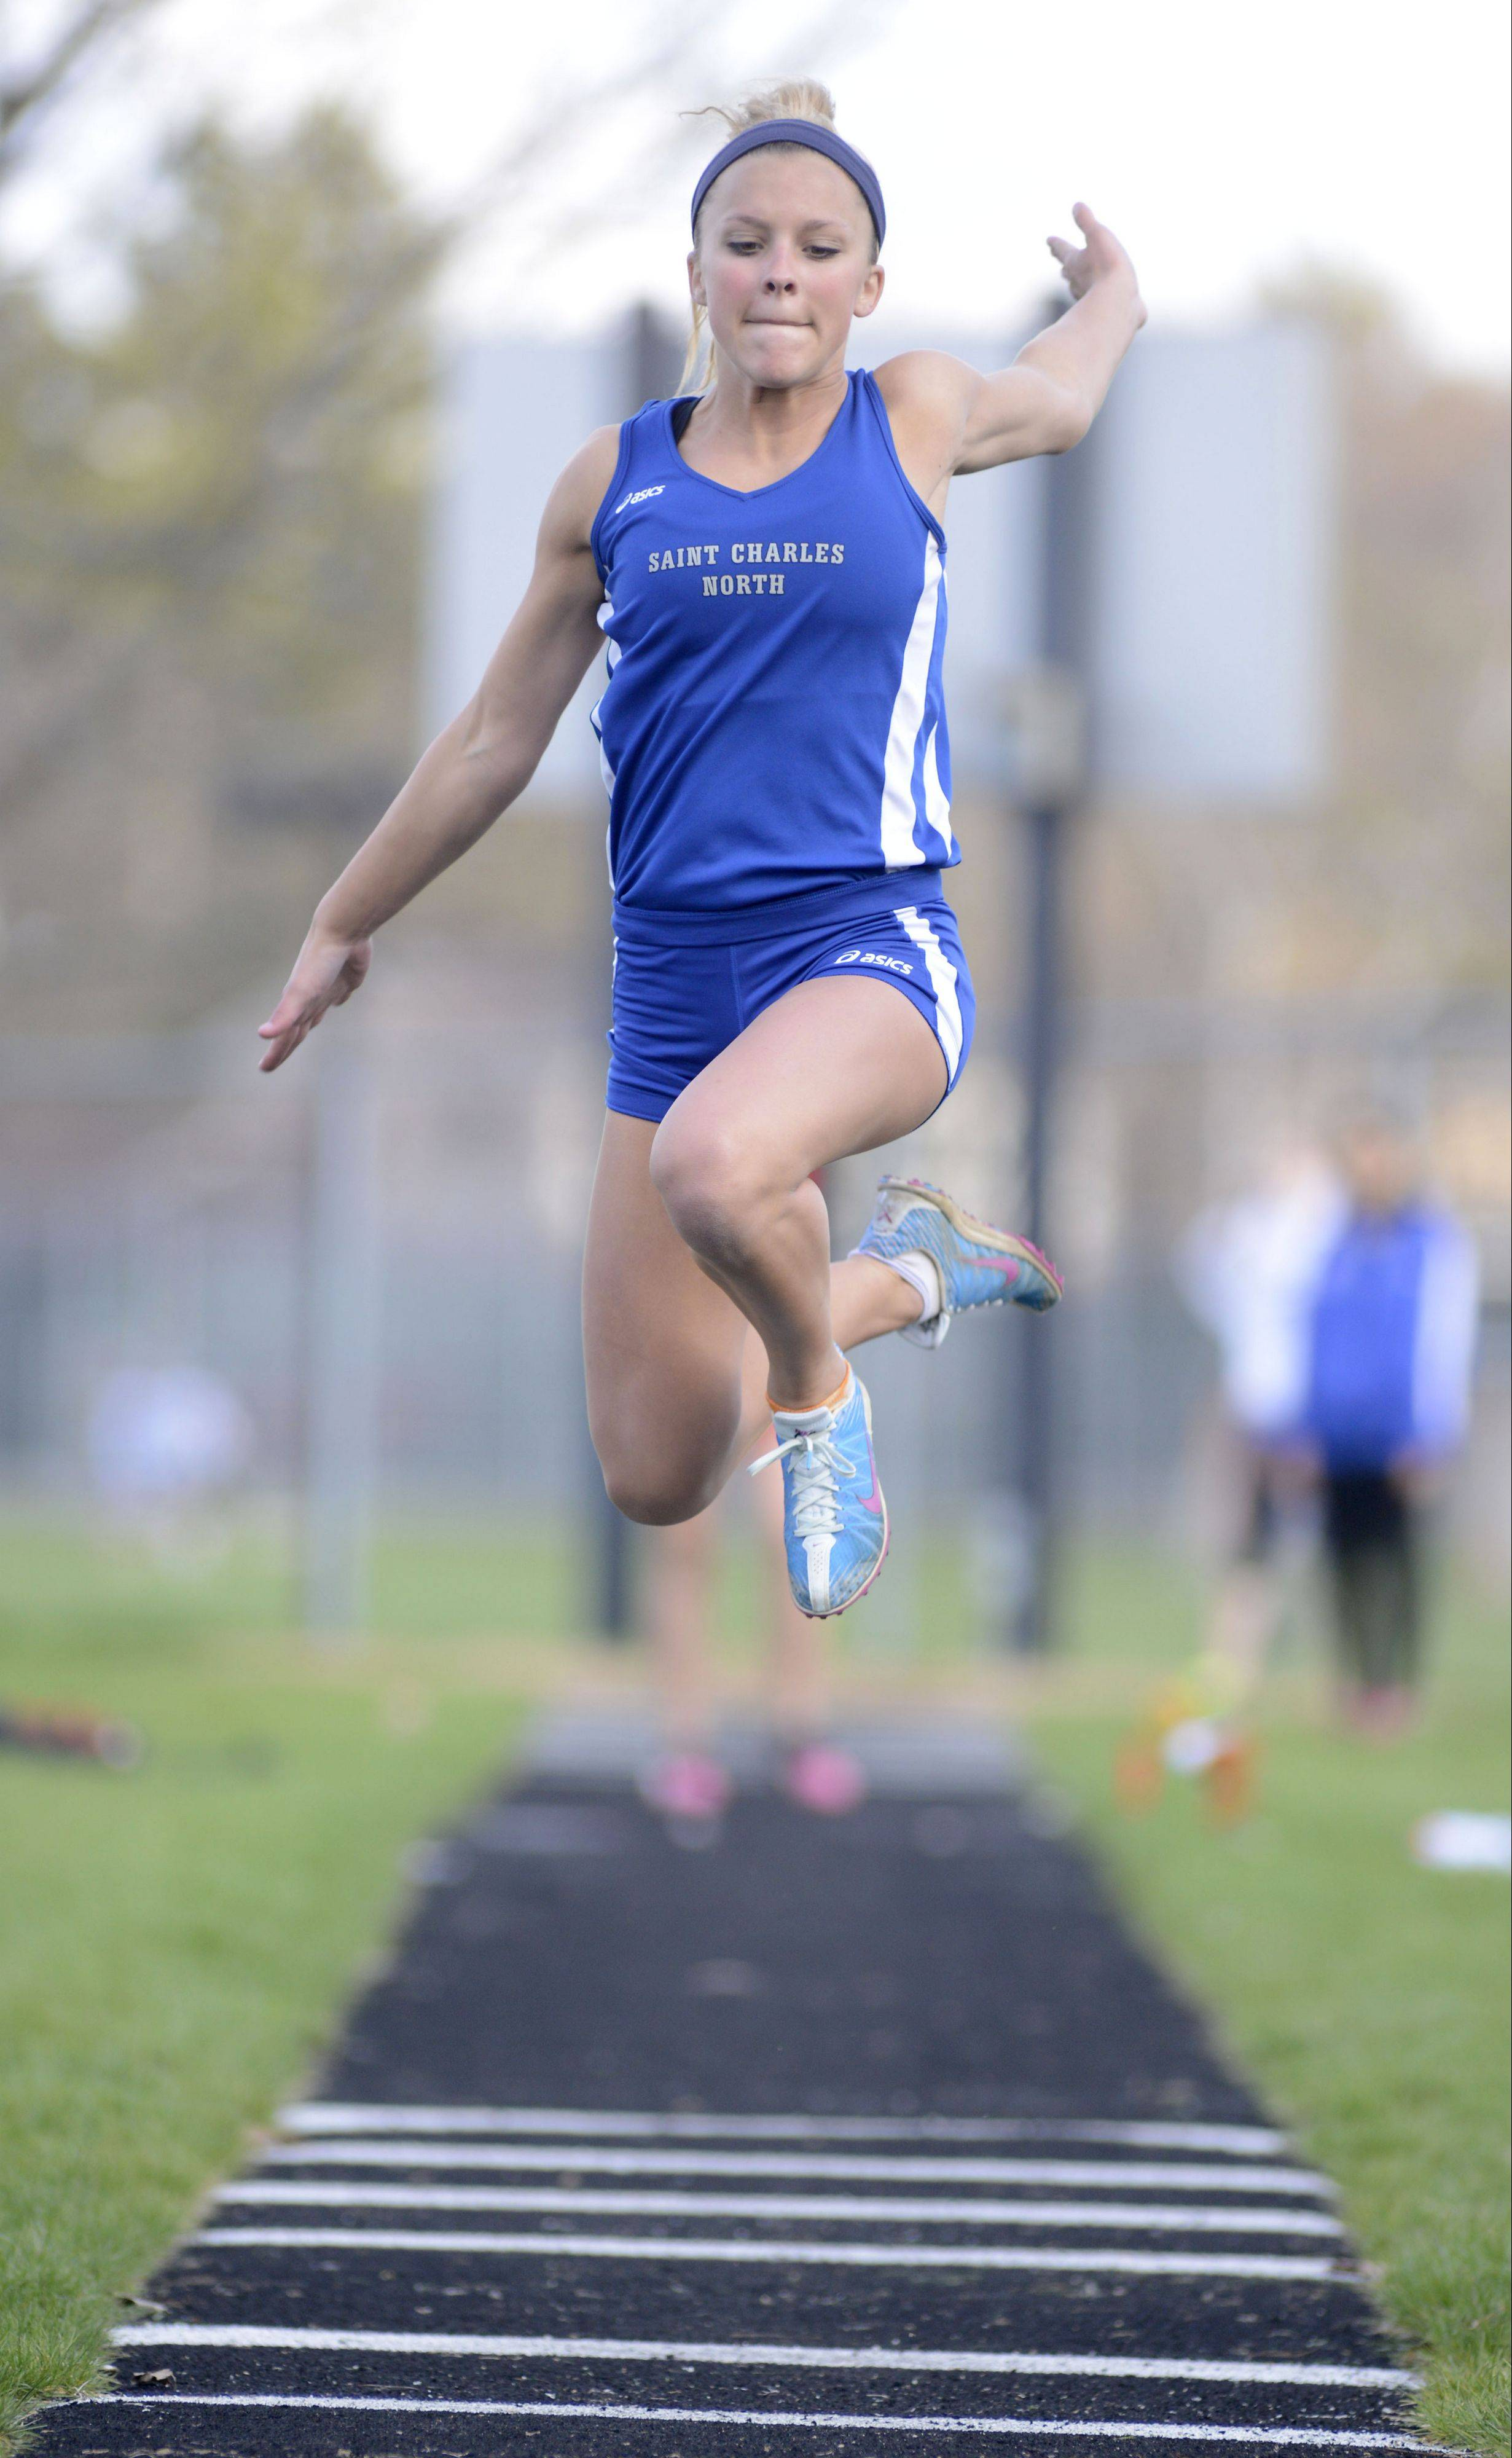 St. Charles North's Hannah Schlib competes in the long jump at the Kane County meet Friday in Geneva.